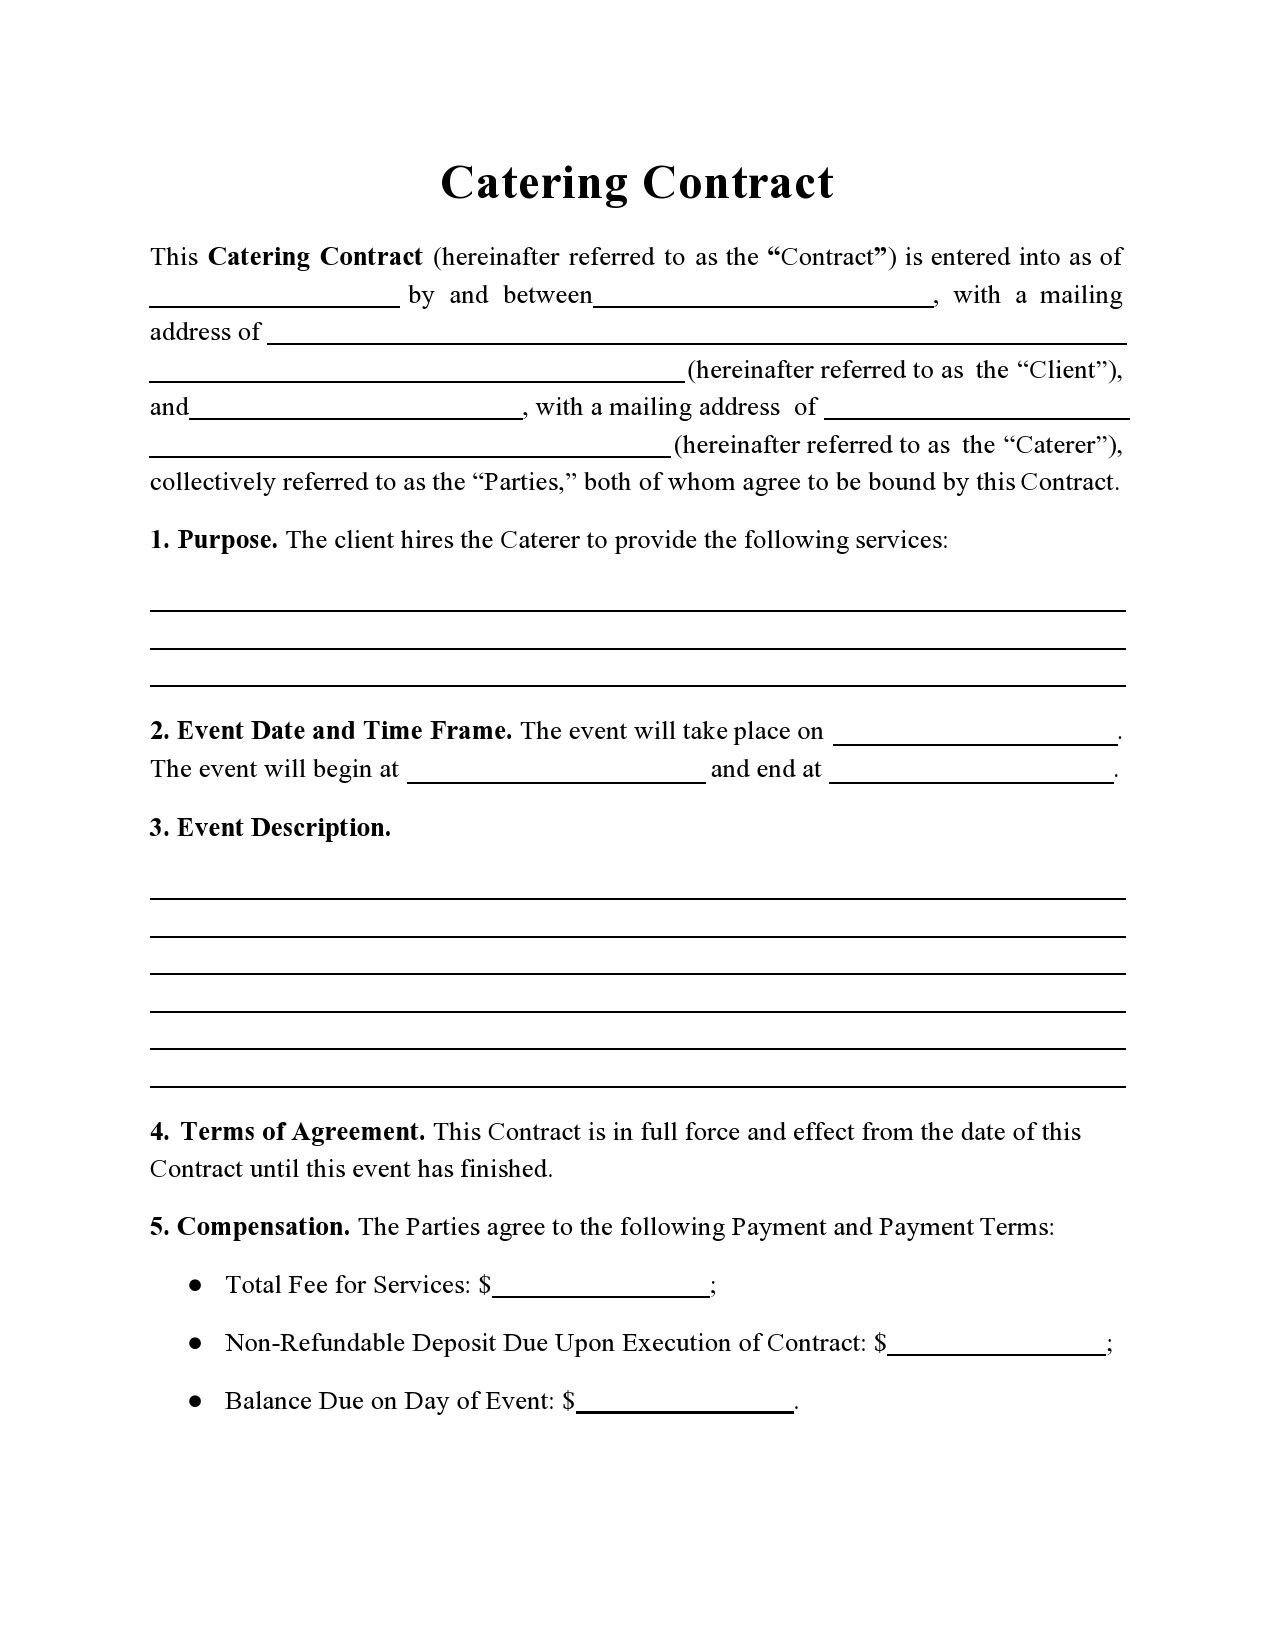 Free catering contract 17